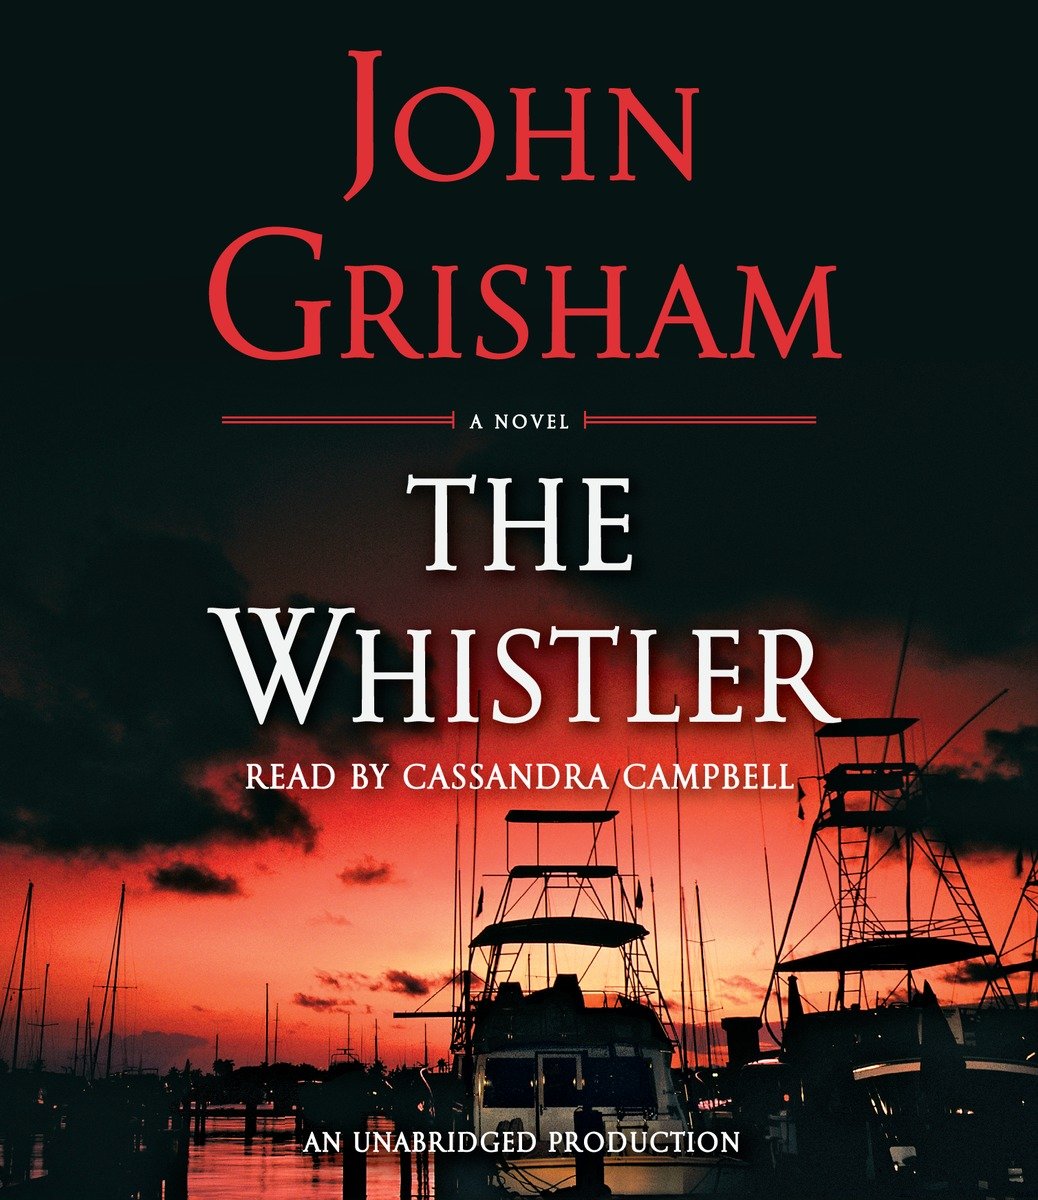 The Whistler irresistible